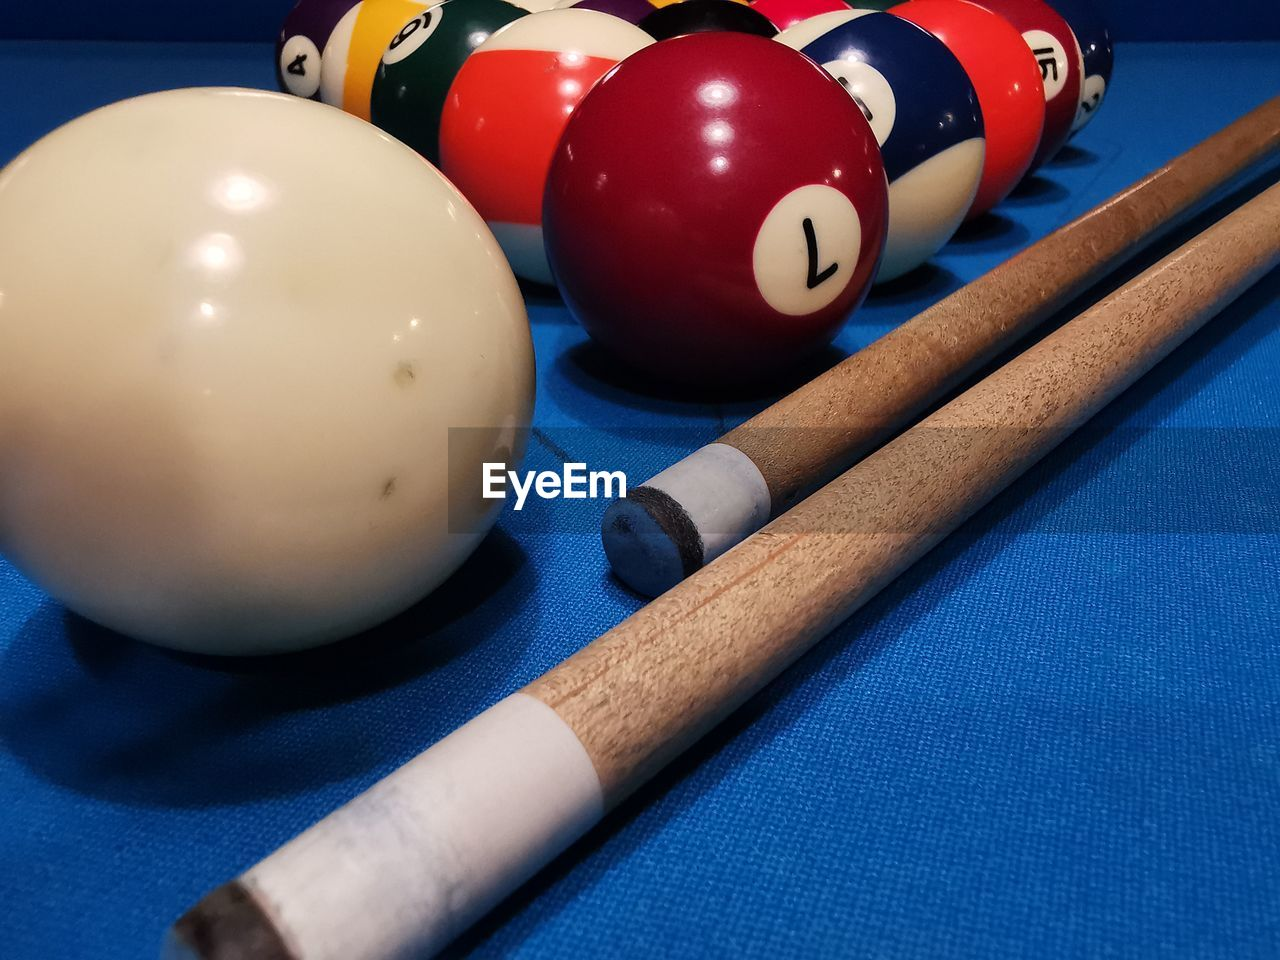 sport, ball, pool ball, table, pool table, sports equipment, pool - cue sport, sphere, pool cue, still life, indoors, blue, snooker, no people, leisure activity, close-up, leisure games, number, high angle view, relaxation